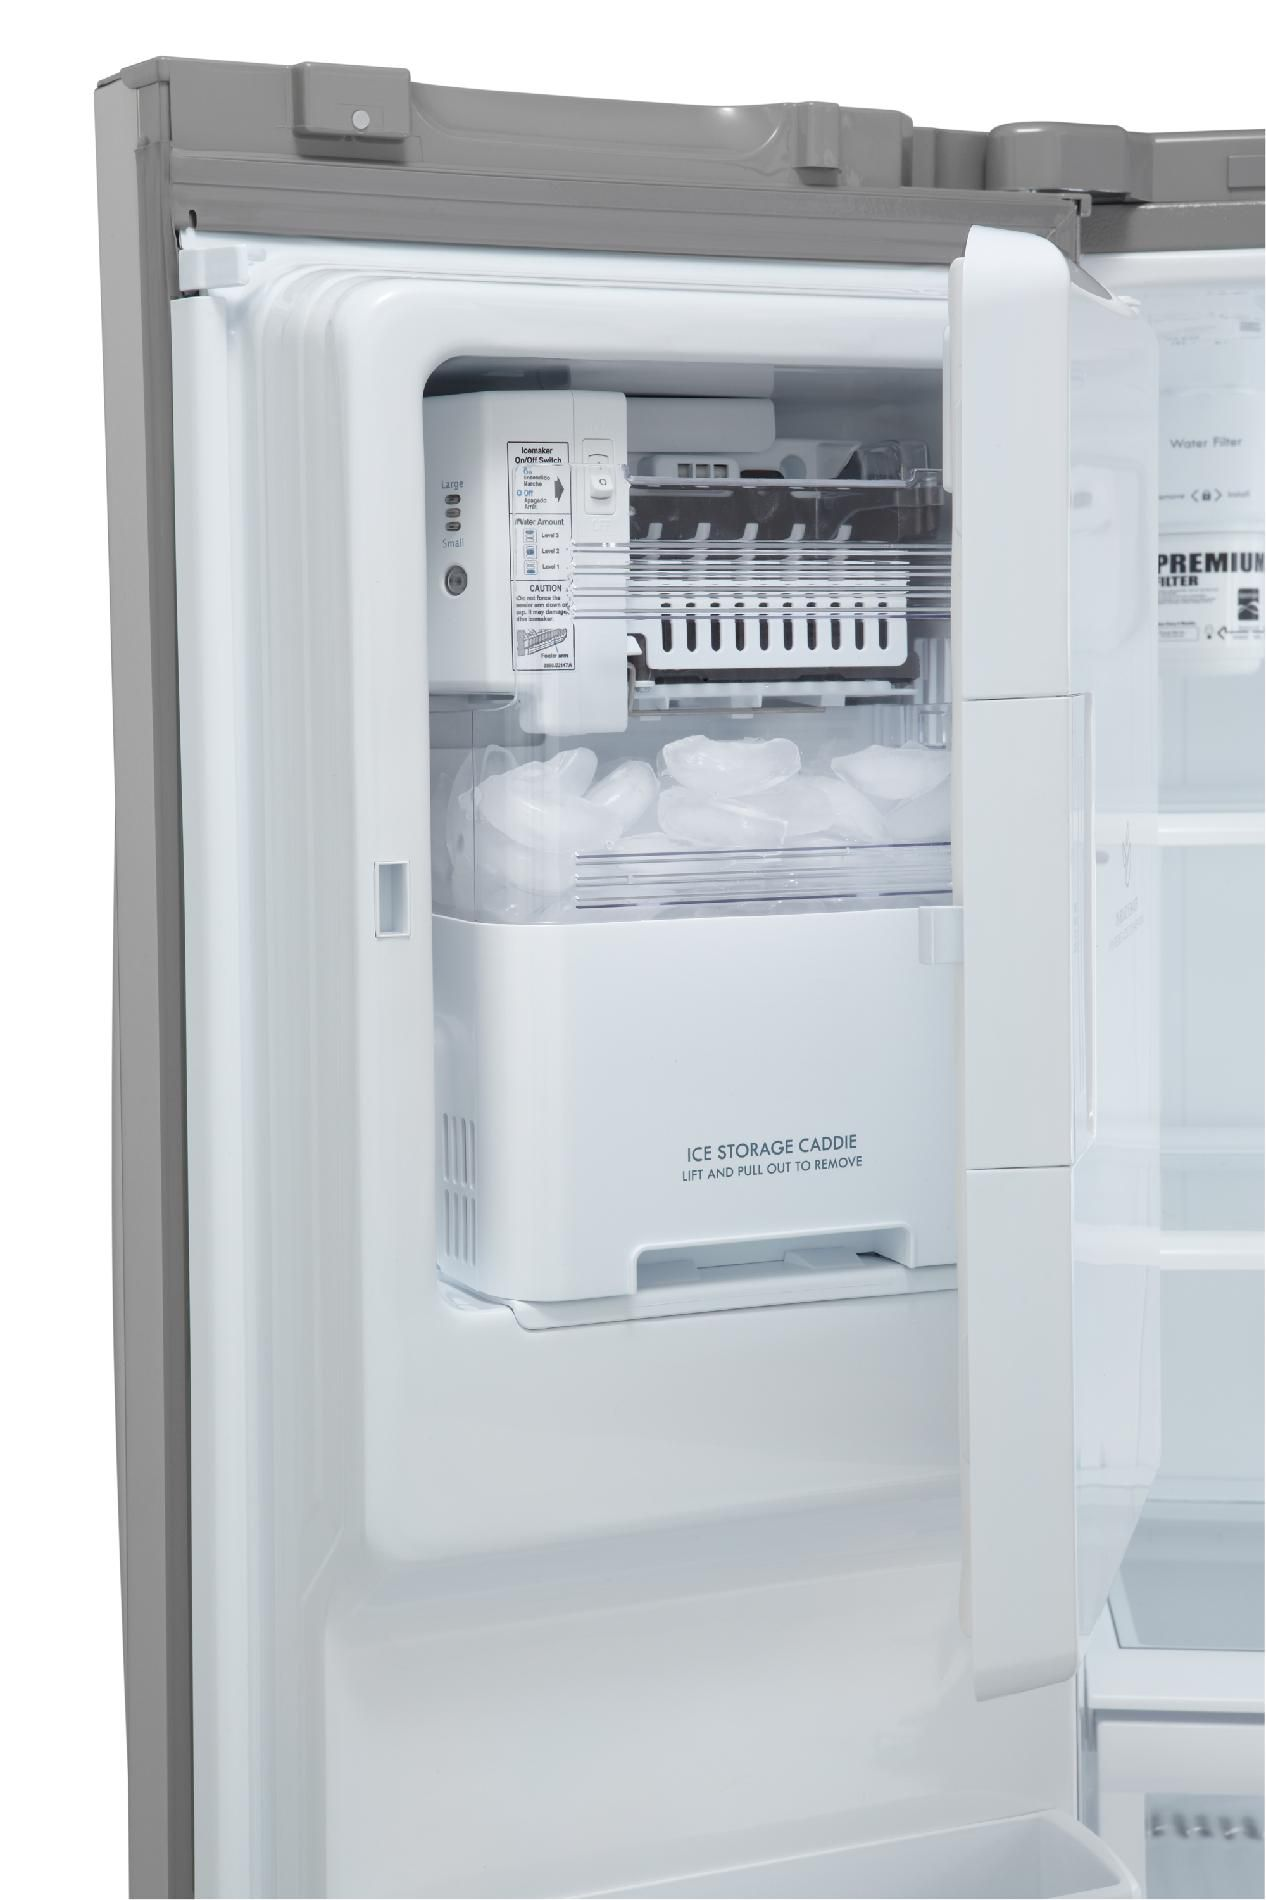 Kenmore 24.7 cu. ft. French-Door Bottom-Freezer, White